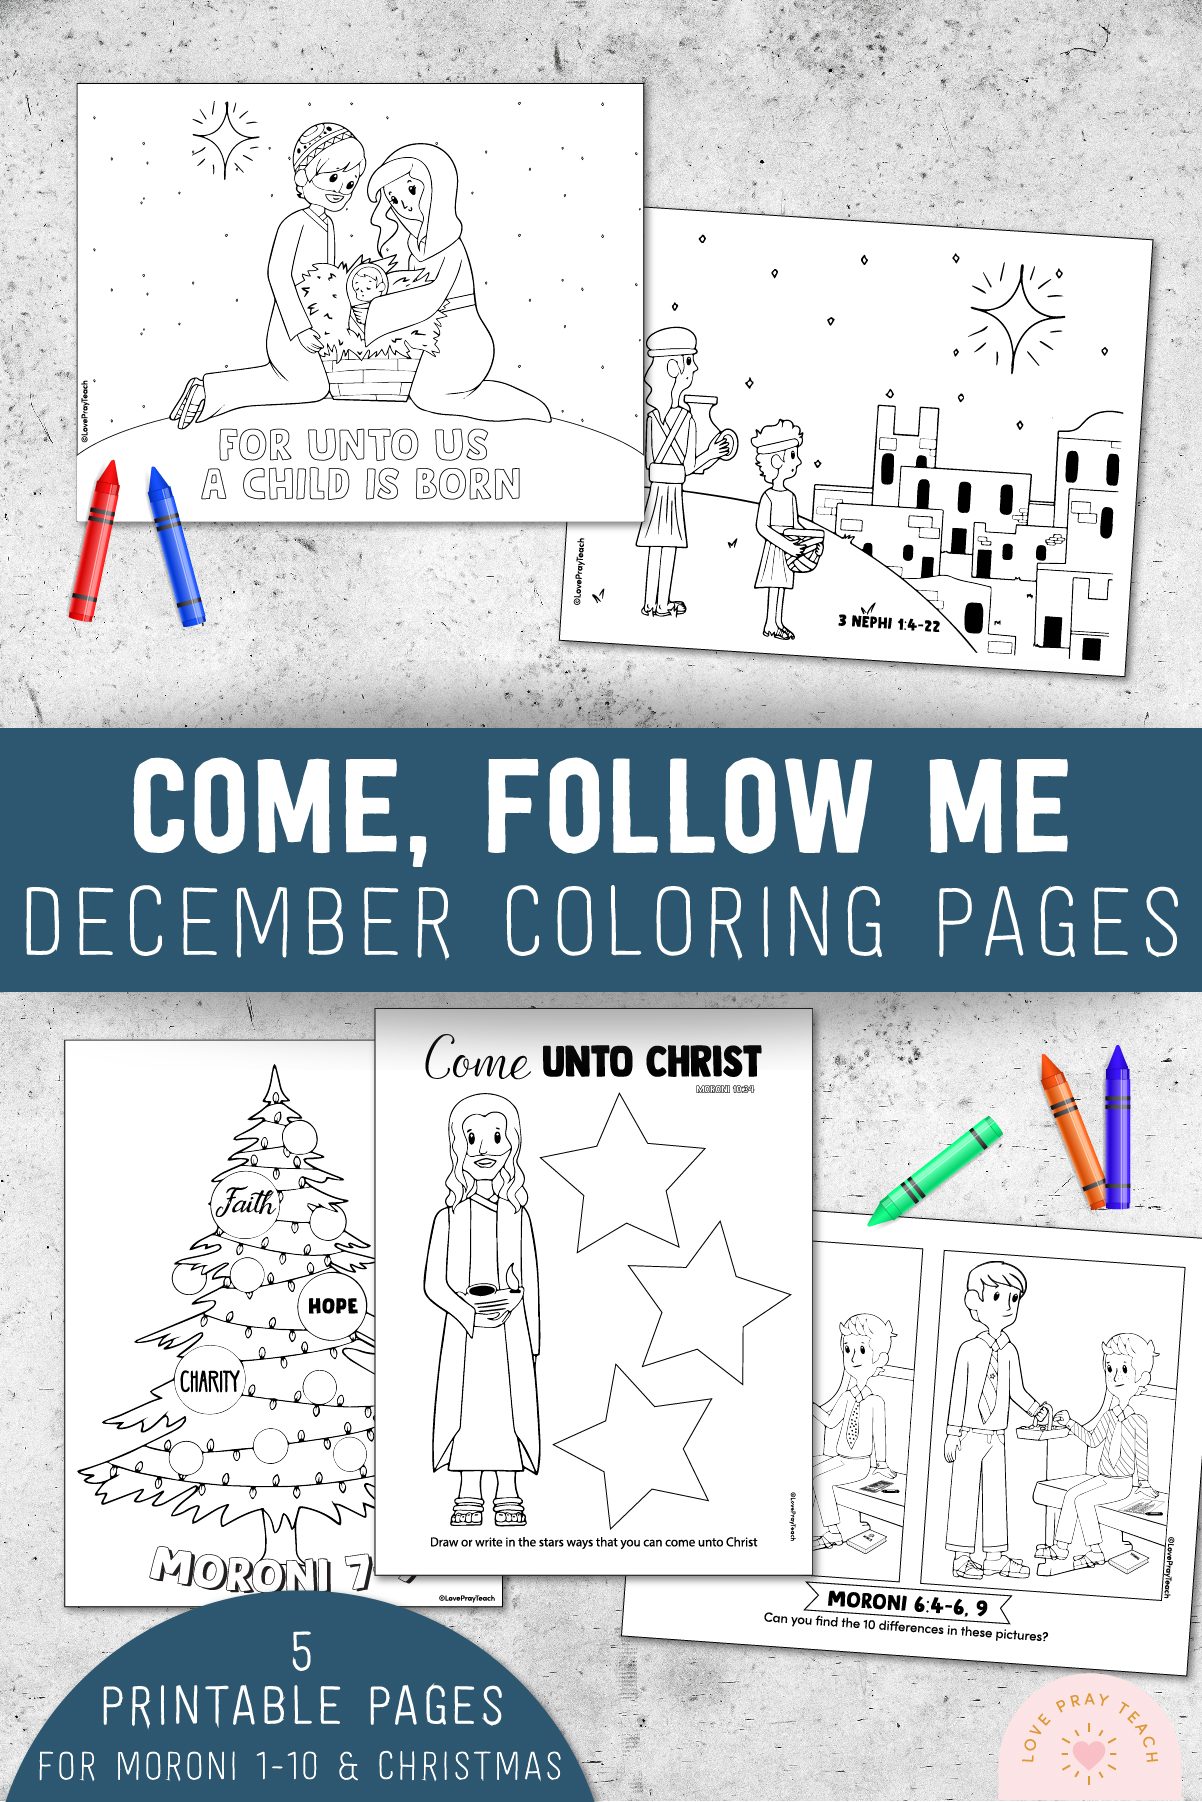 December 2020 Come, Follow Me Coloring Pages for Moroni 1-10 and Christmas www.LovePrayTeach.com